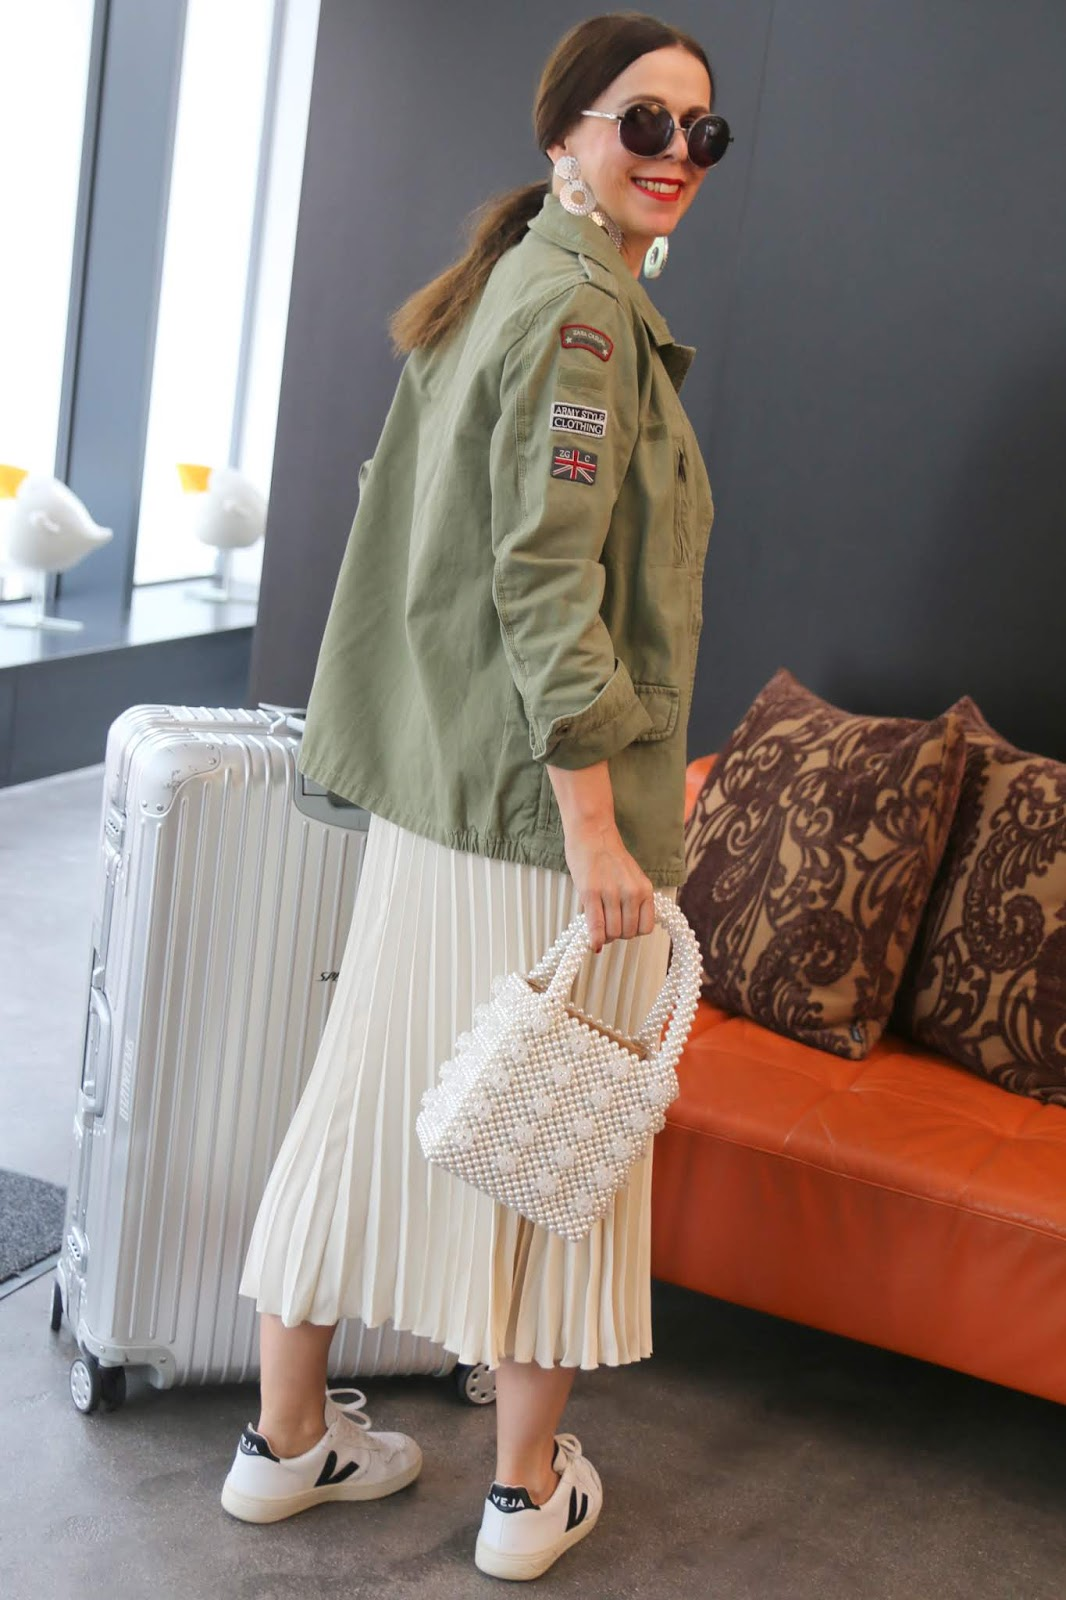 Outfit%2BSpring%2BSummer%2B2019_Pleated%2BSkirt%2BWhite%2BArket_Jacket%2BArmy%2BKhaki_Veja%2BSneakers%2BWhite_Bag%2BShrimps%2BPearls_Glasses%2BRound_Suitcase%2BAluminium%2BRimowa_IMG_2952